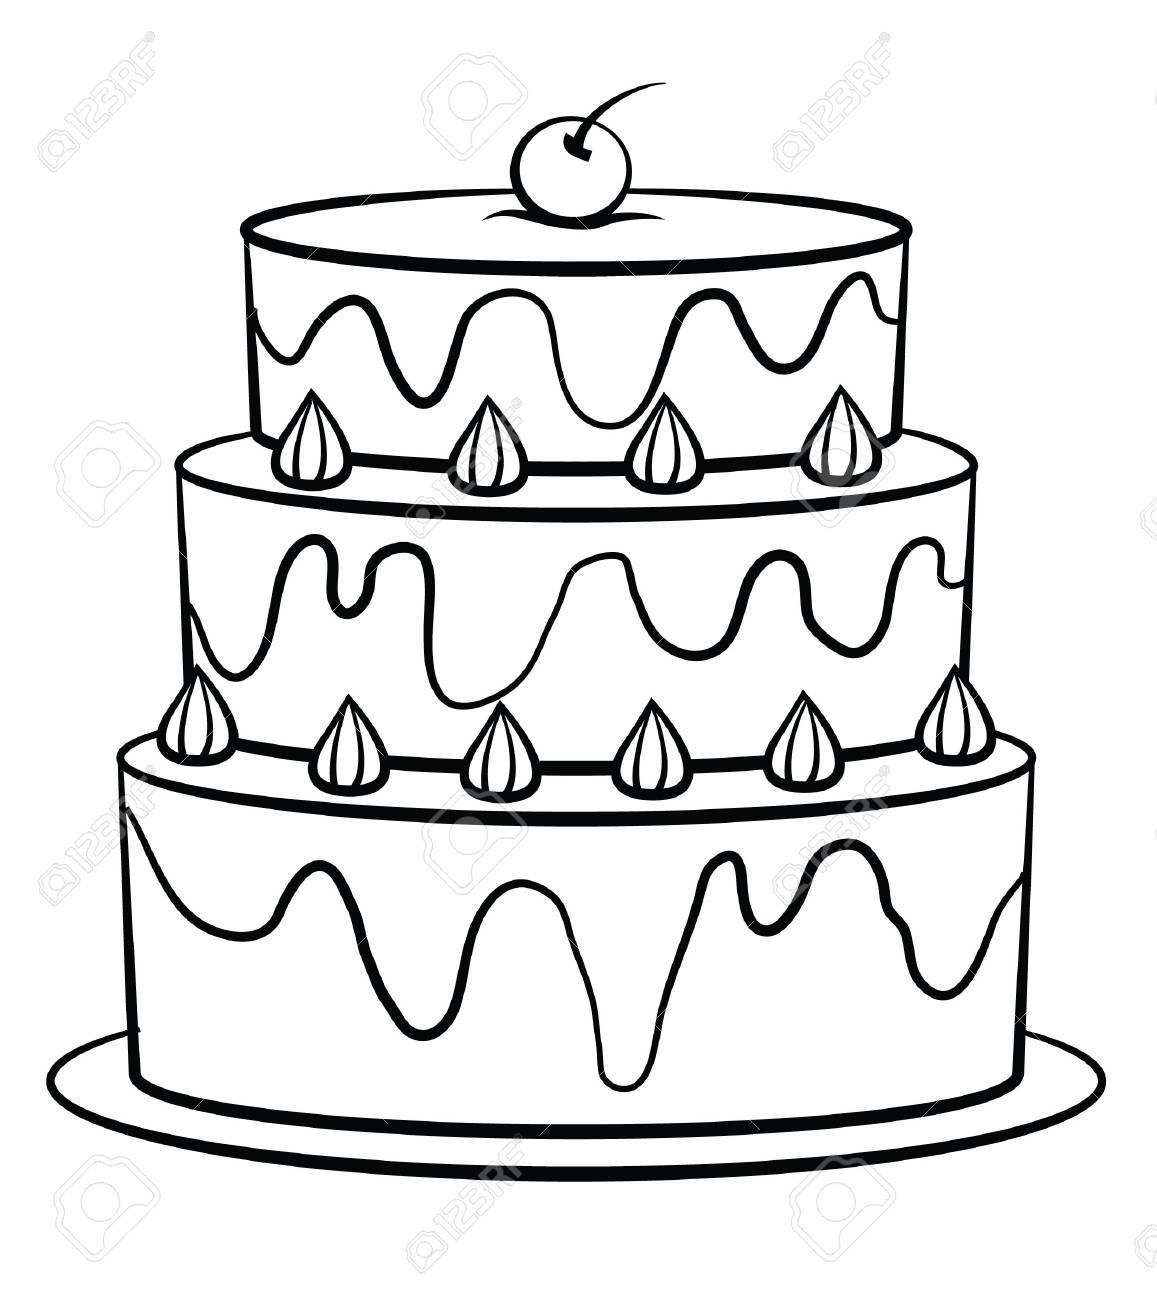 Birthday Cake Royalty Free Cliparts Vectors And Stock Illustration